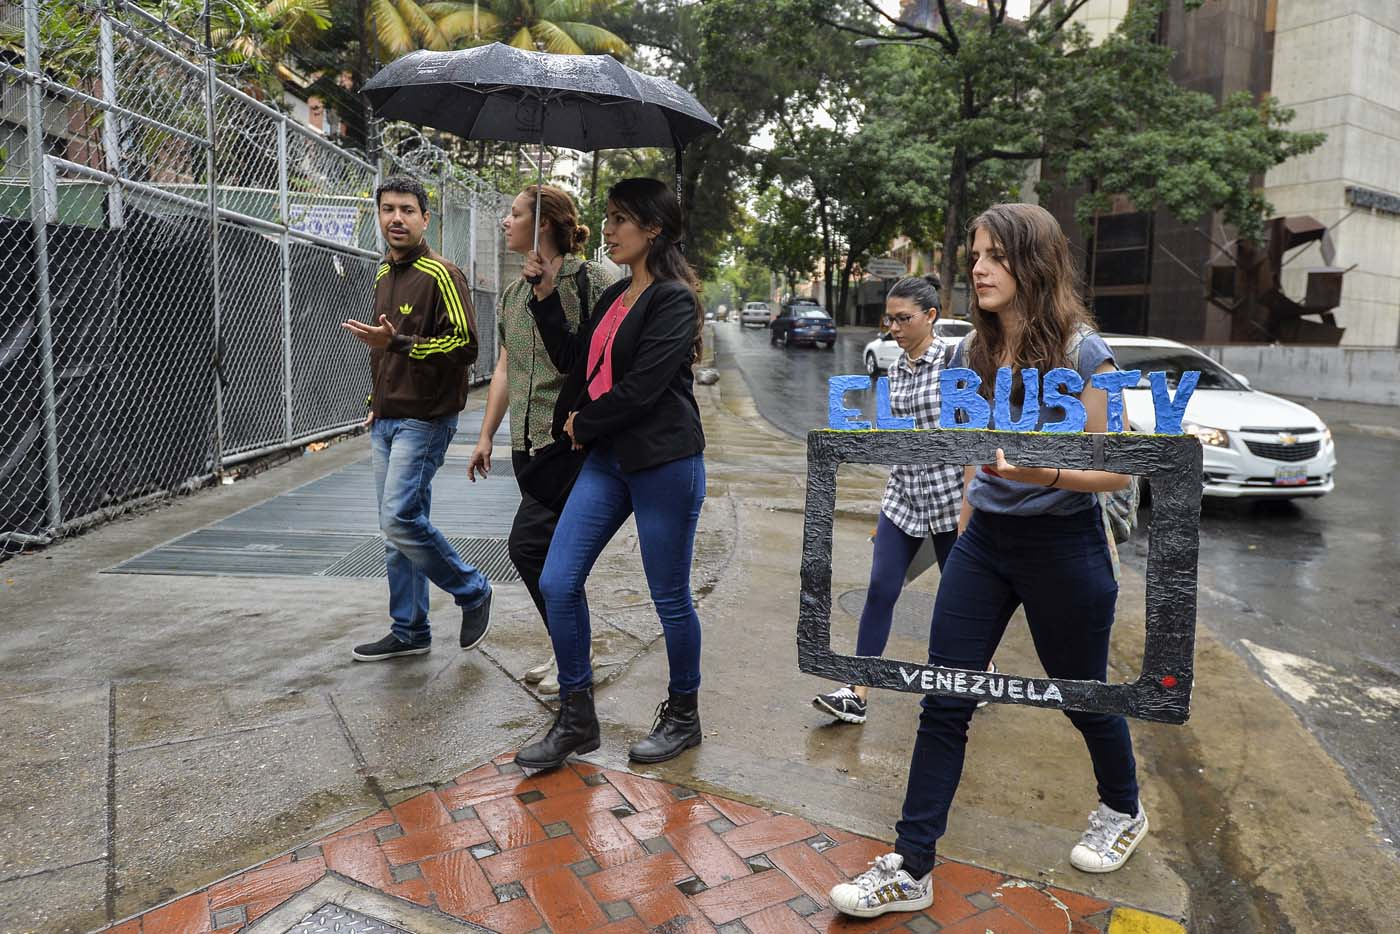 Dereck Blanco (L), Laura Castillo (C-1), Maria Gabriela Fernandez (C-2) and Abril Mejias (R) walk to a bus stop to give an on-board presentation of the Bus TV news in Caracas, Venezuela, on June 6, 2017. A group of young Venezuelan reporters board buses to present the news, as part of a project to keep people informed in the face of what the opposition and the national journalists' union describe as censorship by the government of Nicolas Maduro. / AFP PHOTO / LUIS ROBAYO